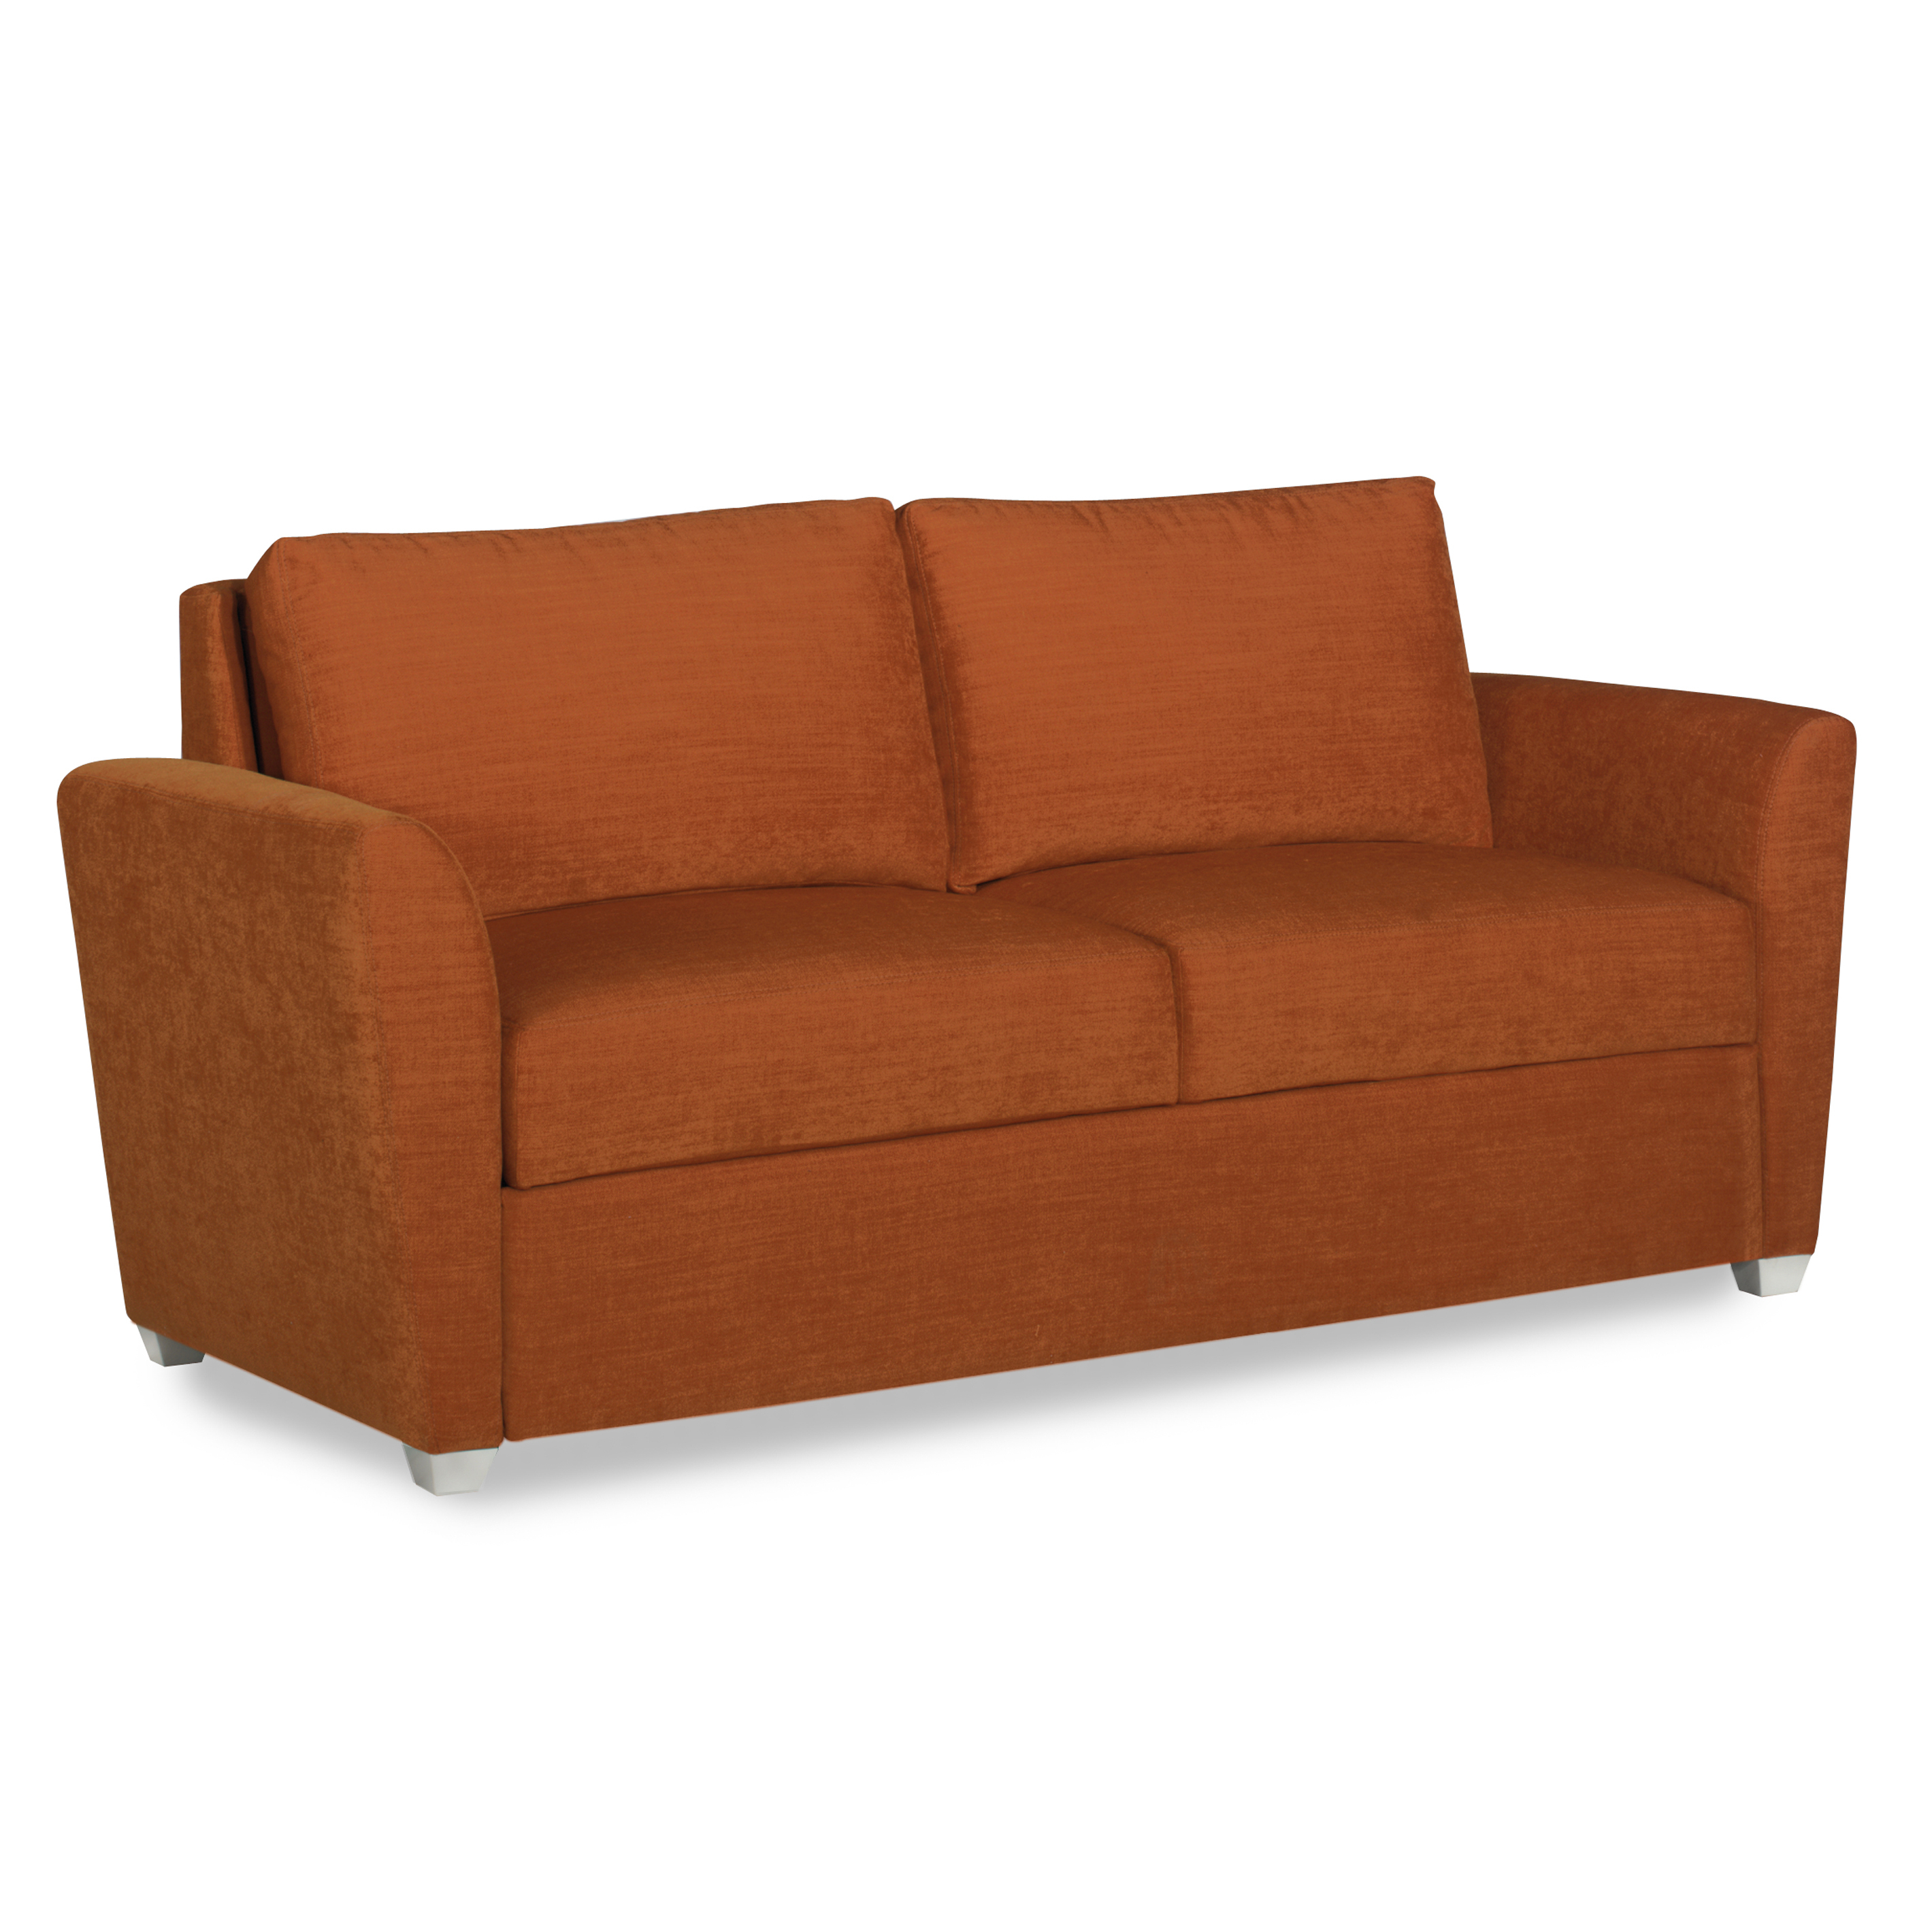 Cameron Sofa W/paragon Queen Sleeper – Lazar Intended For Cameron Sofa Chairs (Image 14 of 25)